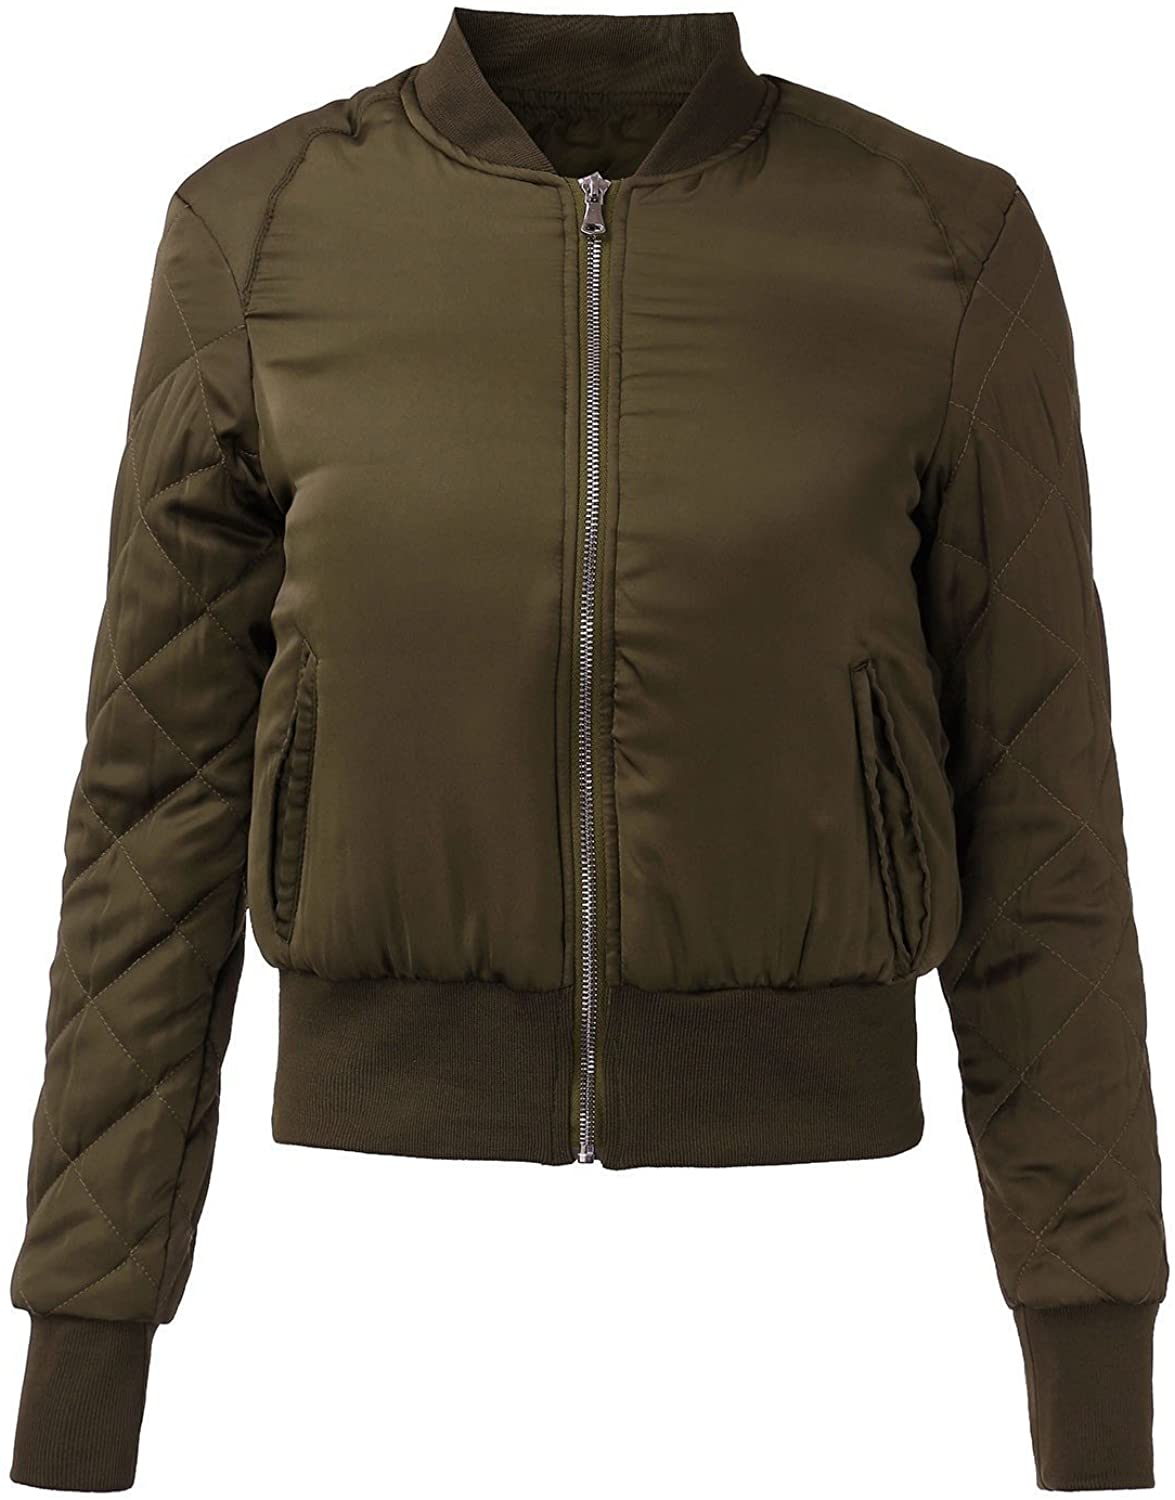 Costbuys Autumn Winter Women Quilted Jacket Thick Cotton Padded Short Bomber Coats Casual